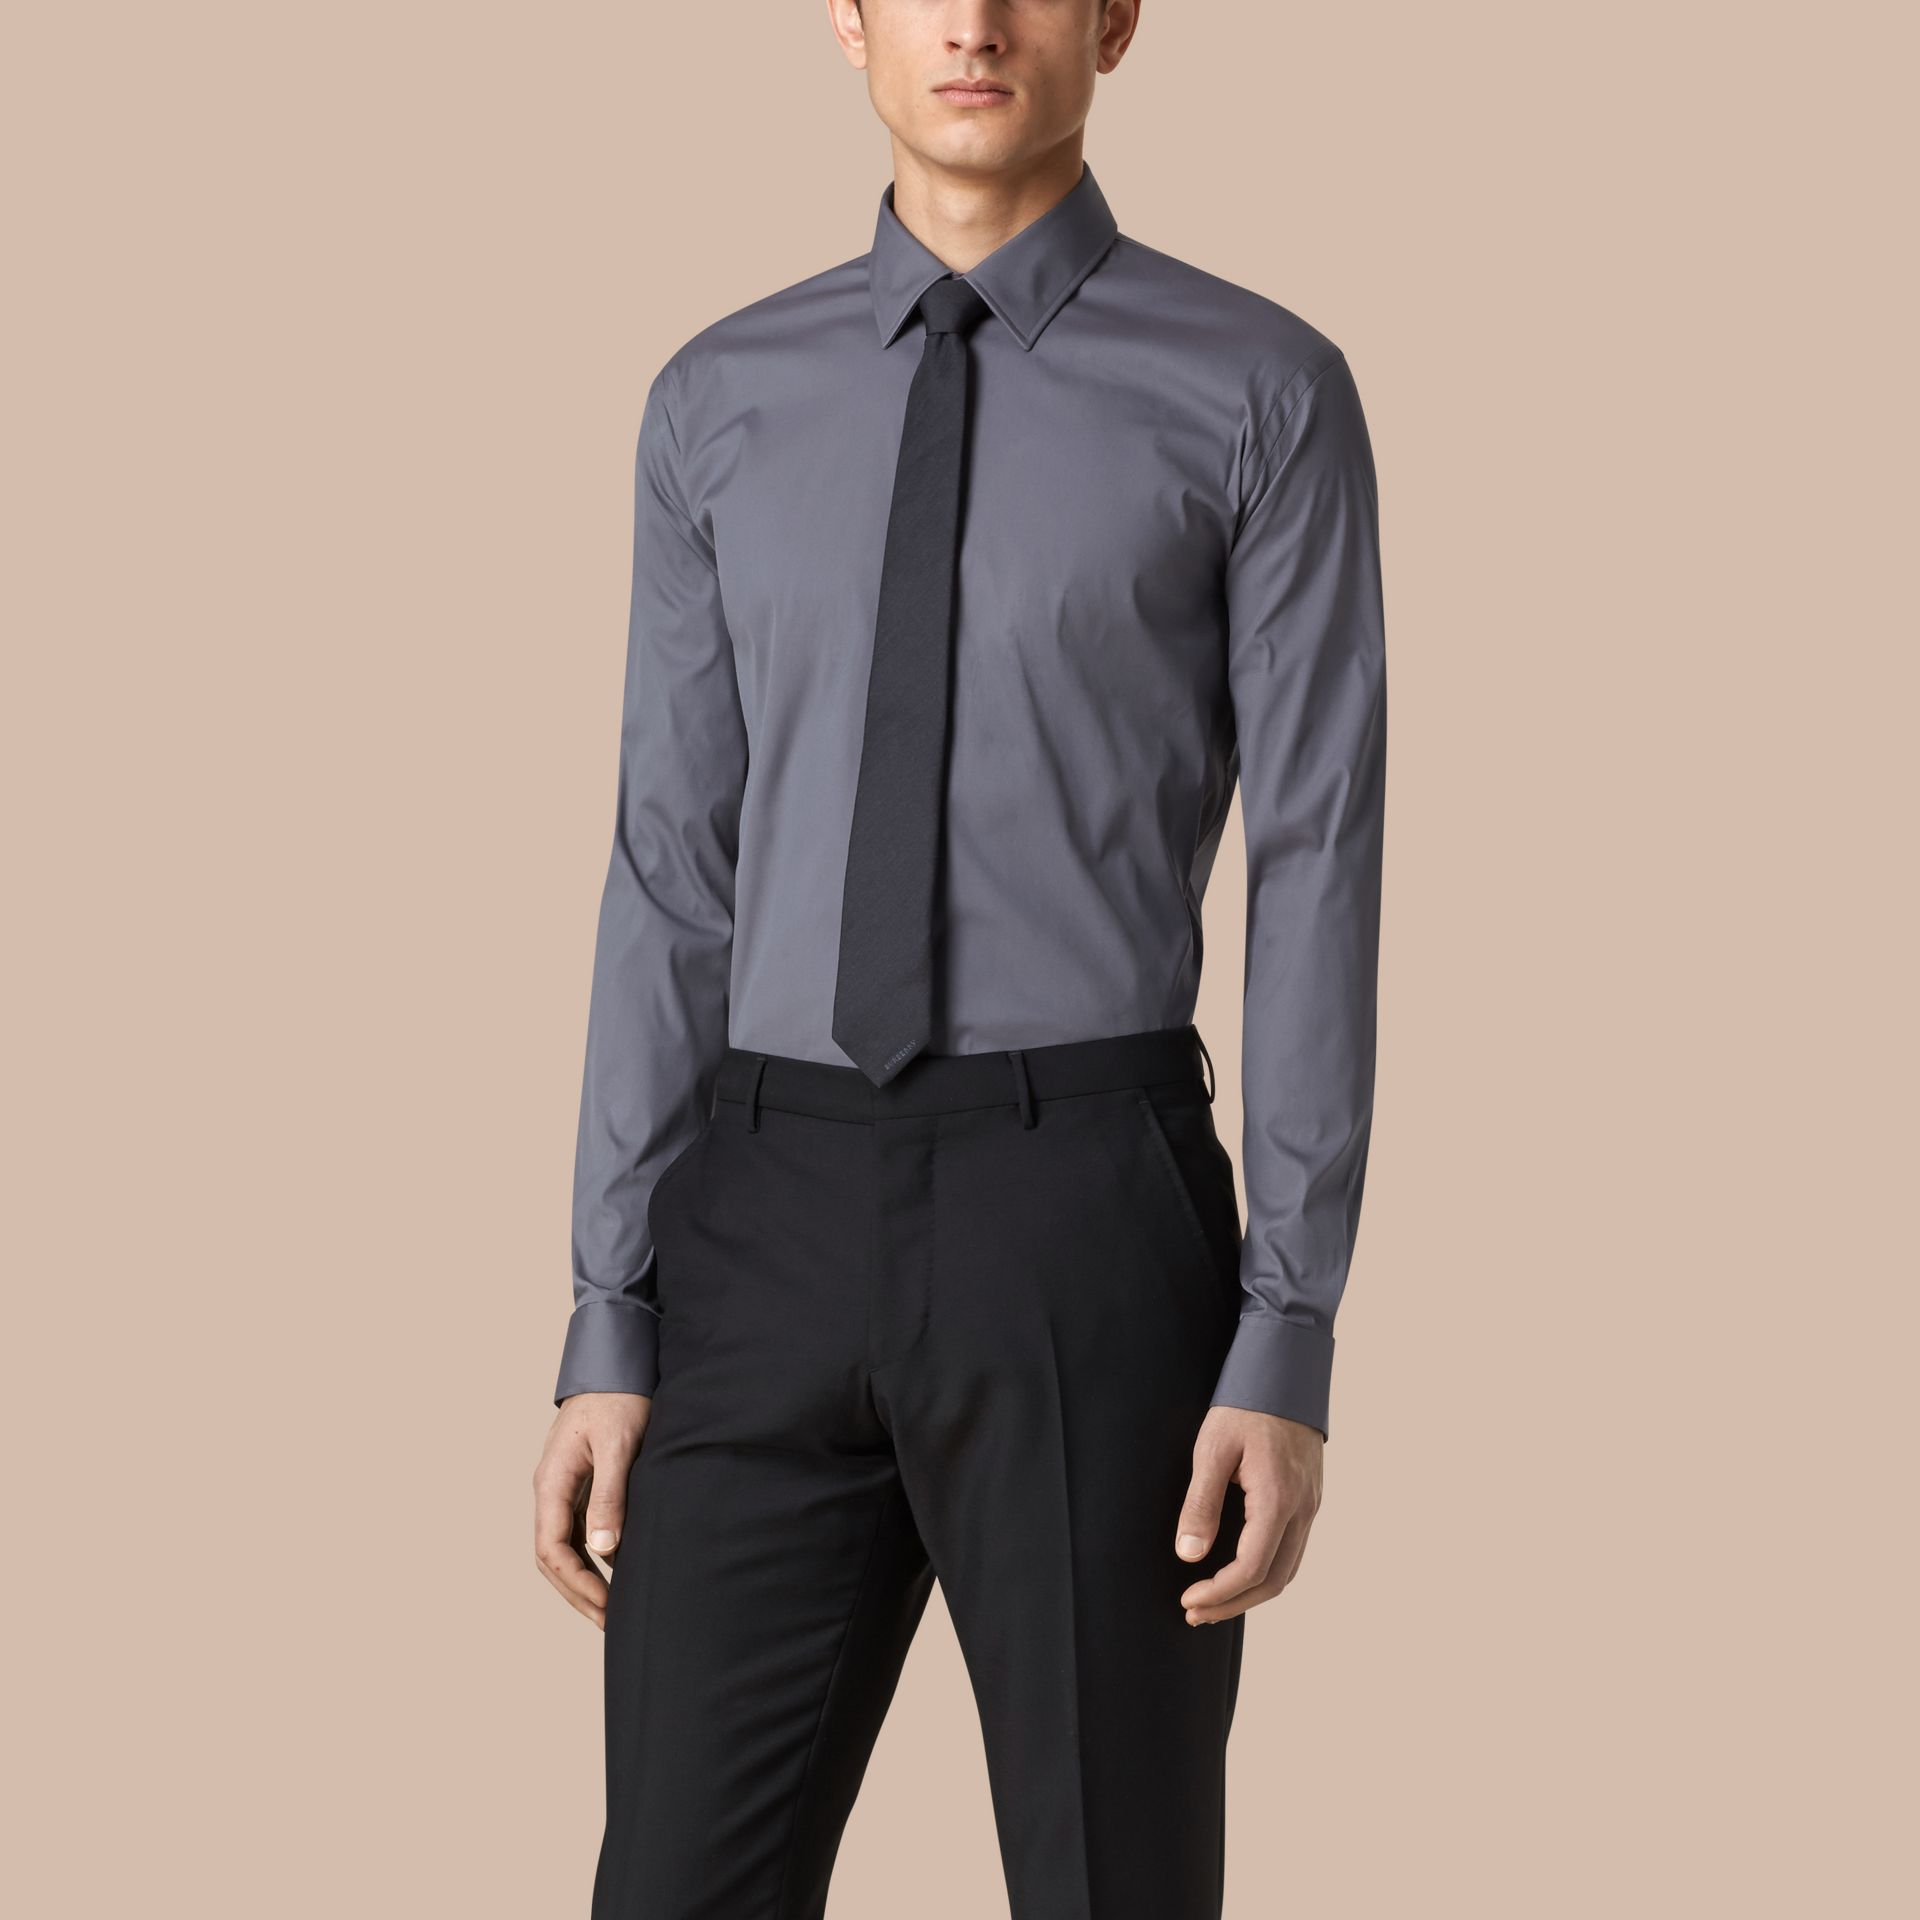 City grey Modern Fit Stretch Cotton Shirt City Grey - gallery image 1